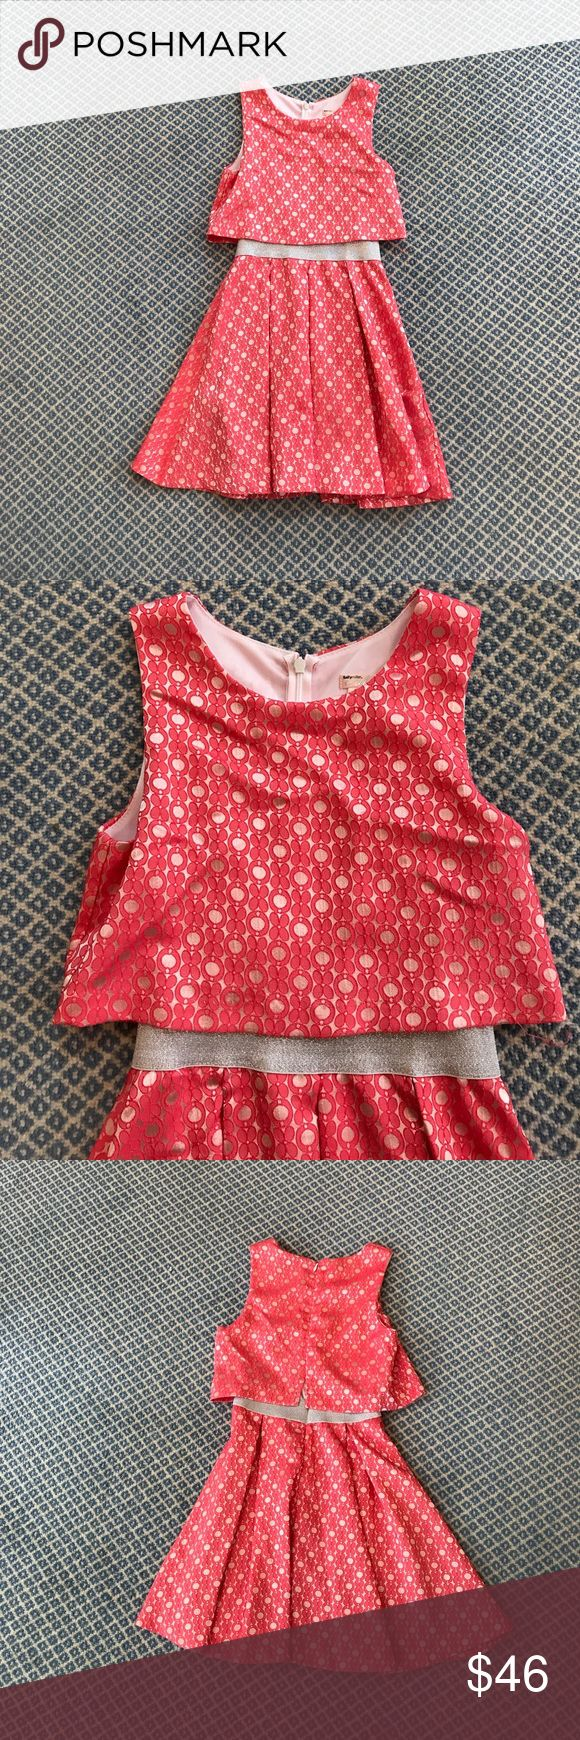 Sally Miller Couture Girls Dress Size 10M. Sally Miller Dress Coral Colored with Silver Waist Band and a Flower Pattern. Has linen and is in great condition. Sally Miller Dresses Formal